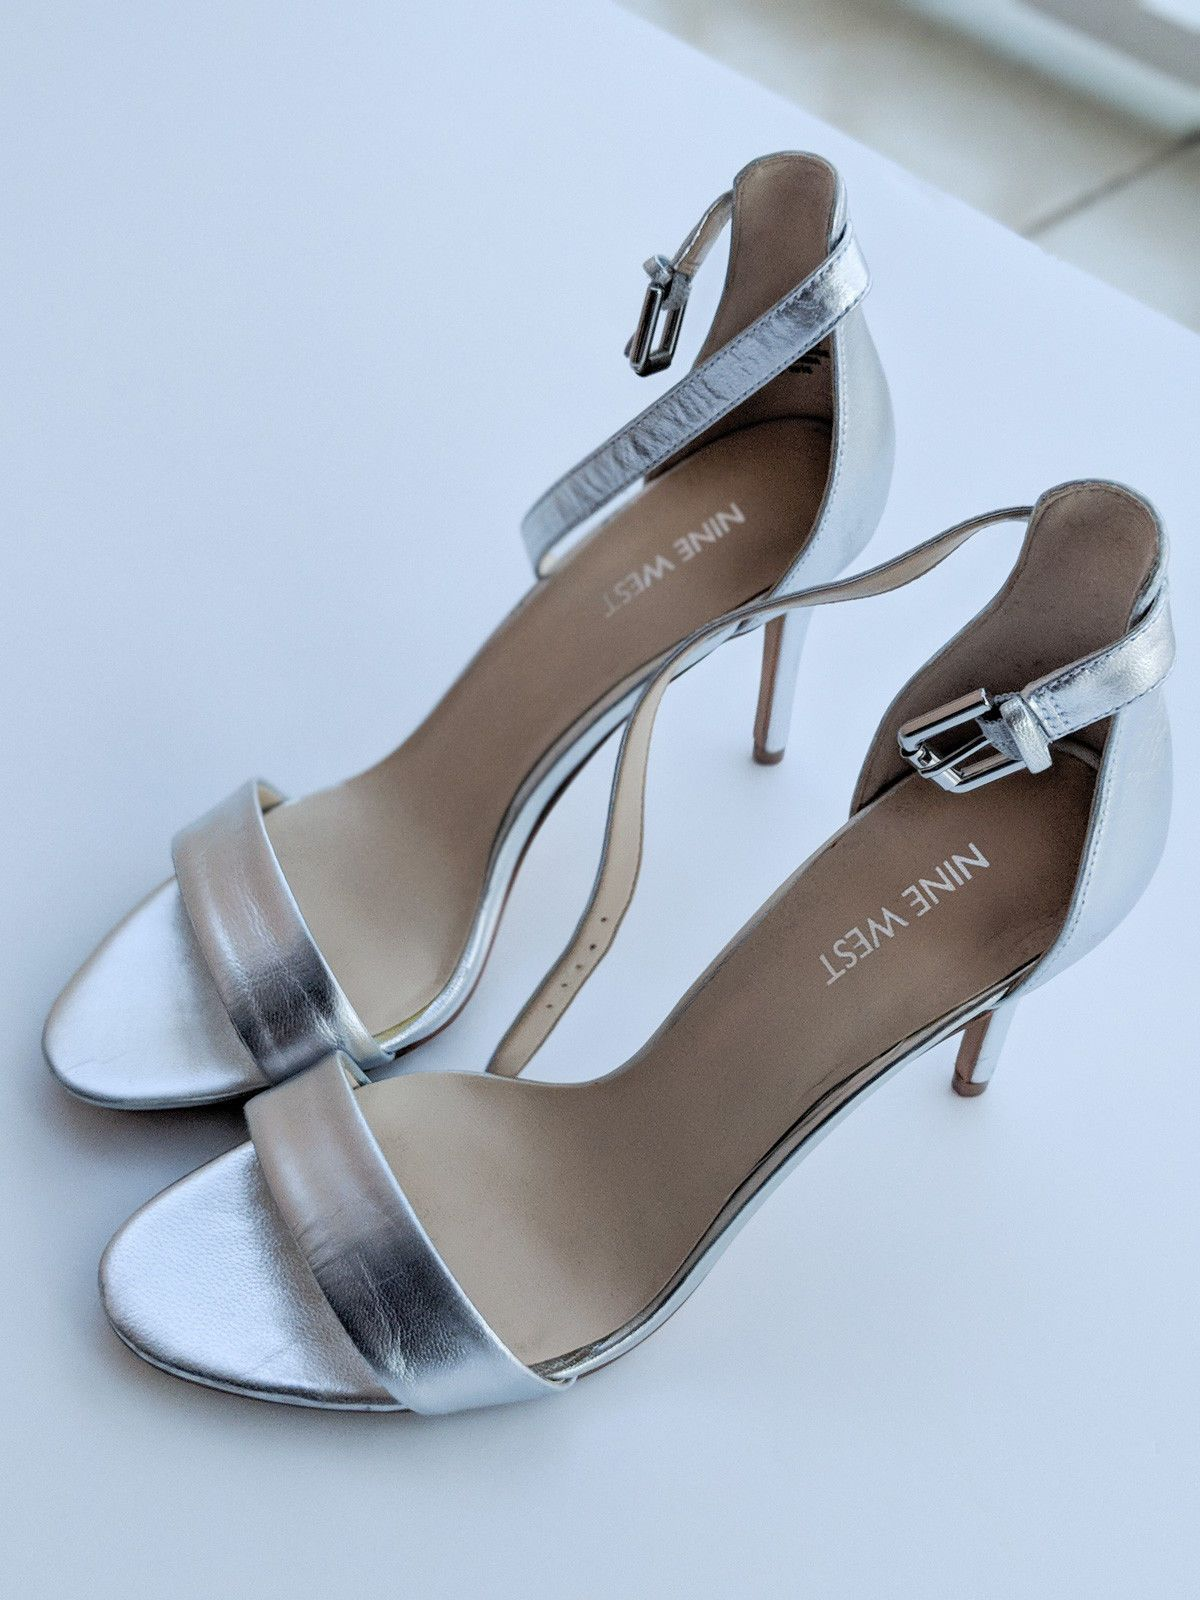 8ae2d3fe369ba Nine West Mana Open Toe Stiletto Heel Sandal shoes 8.5 SILVER Sapatos De  Salto De